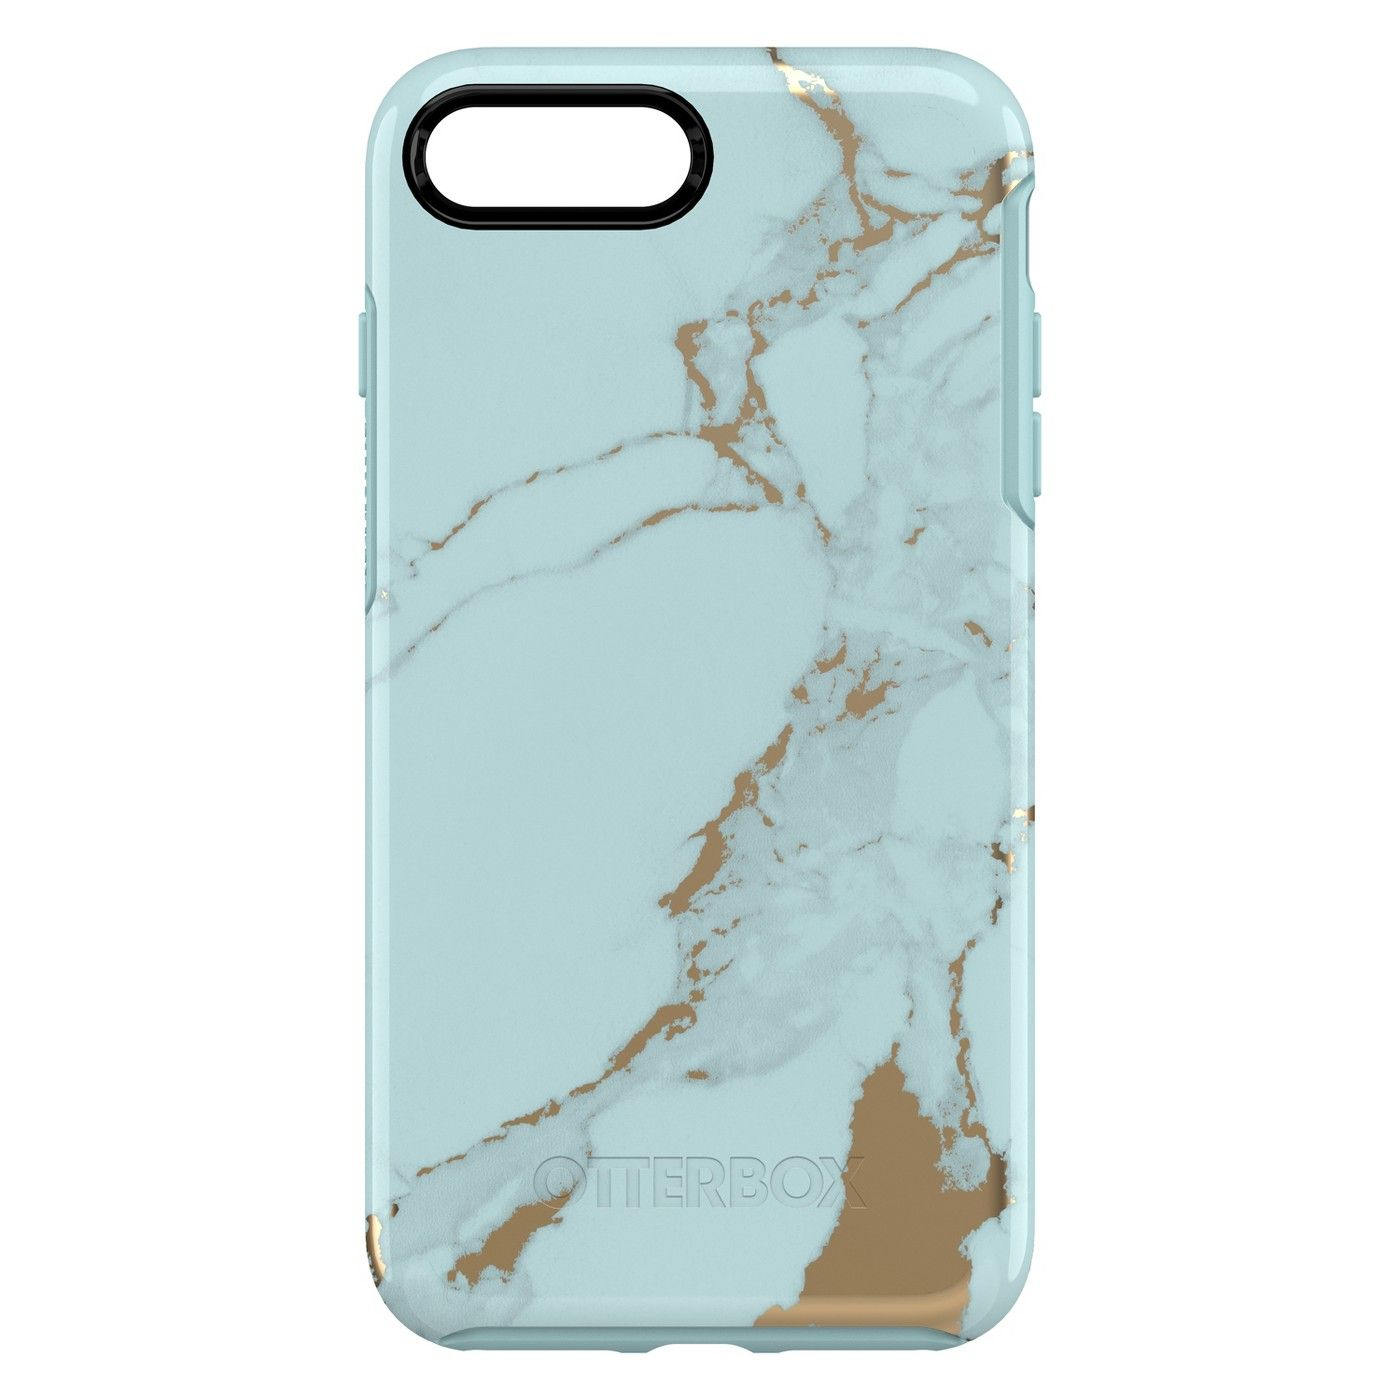 check out 9786a 4242c OtterBox Apple iPhone 8 Plus/7 Plus Symmetry Case - Teal Marble in ...